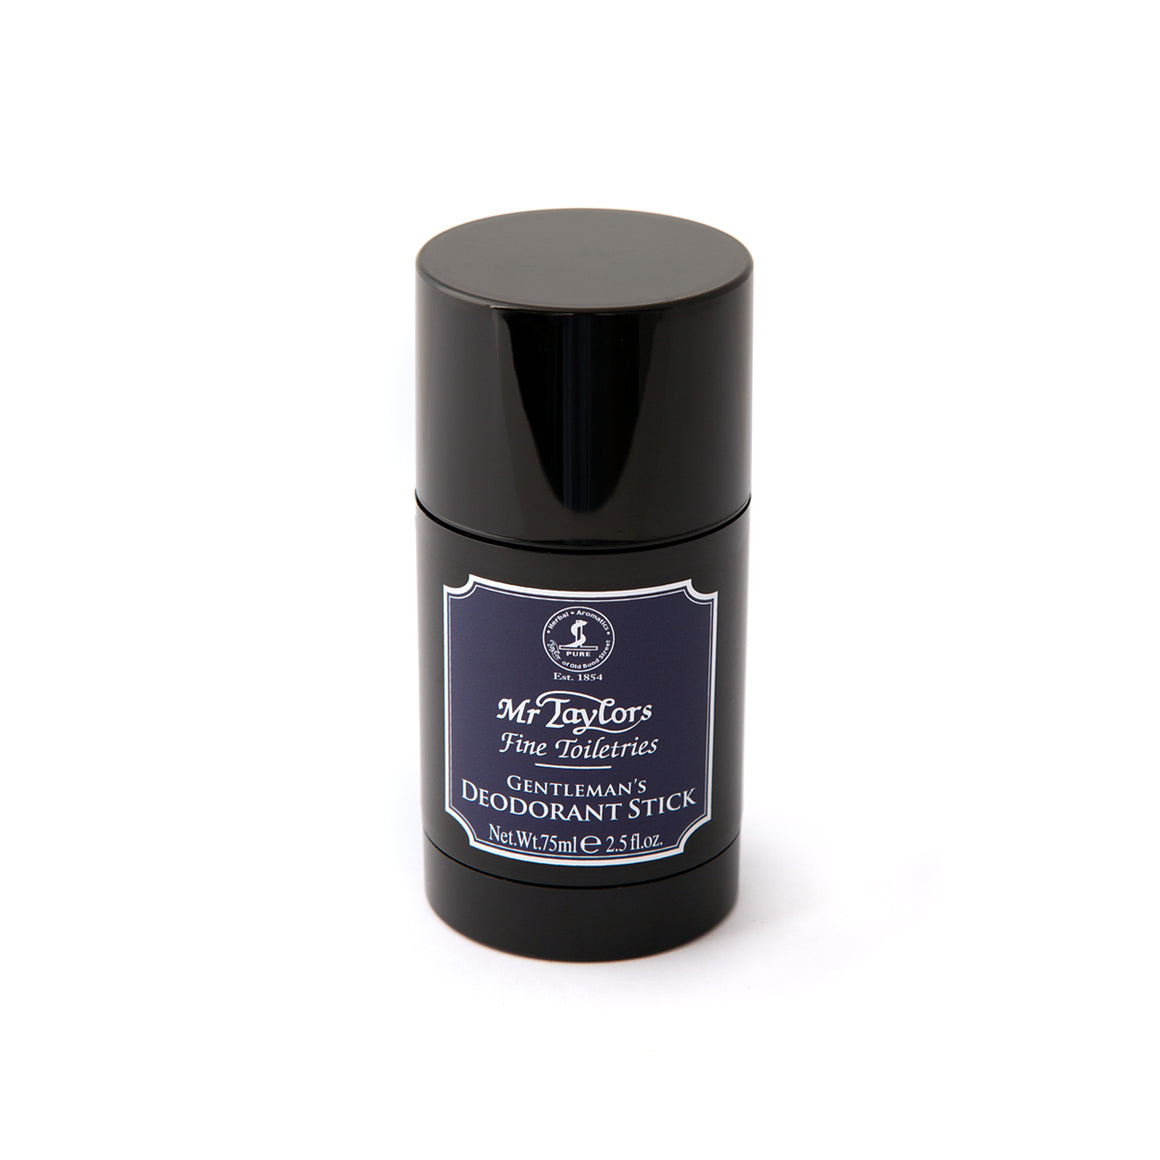 Taylor of Old Bond Street Mr Taylor Deodorant Stick 75ml